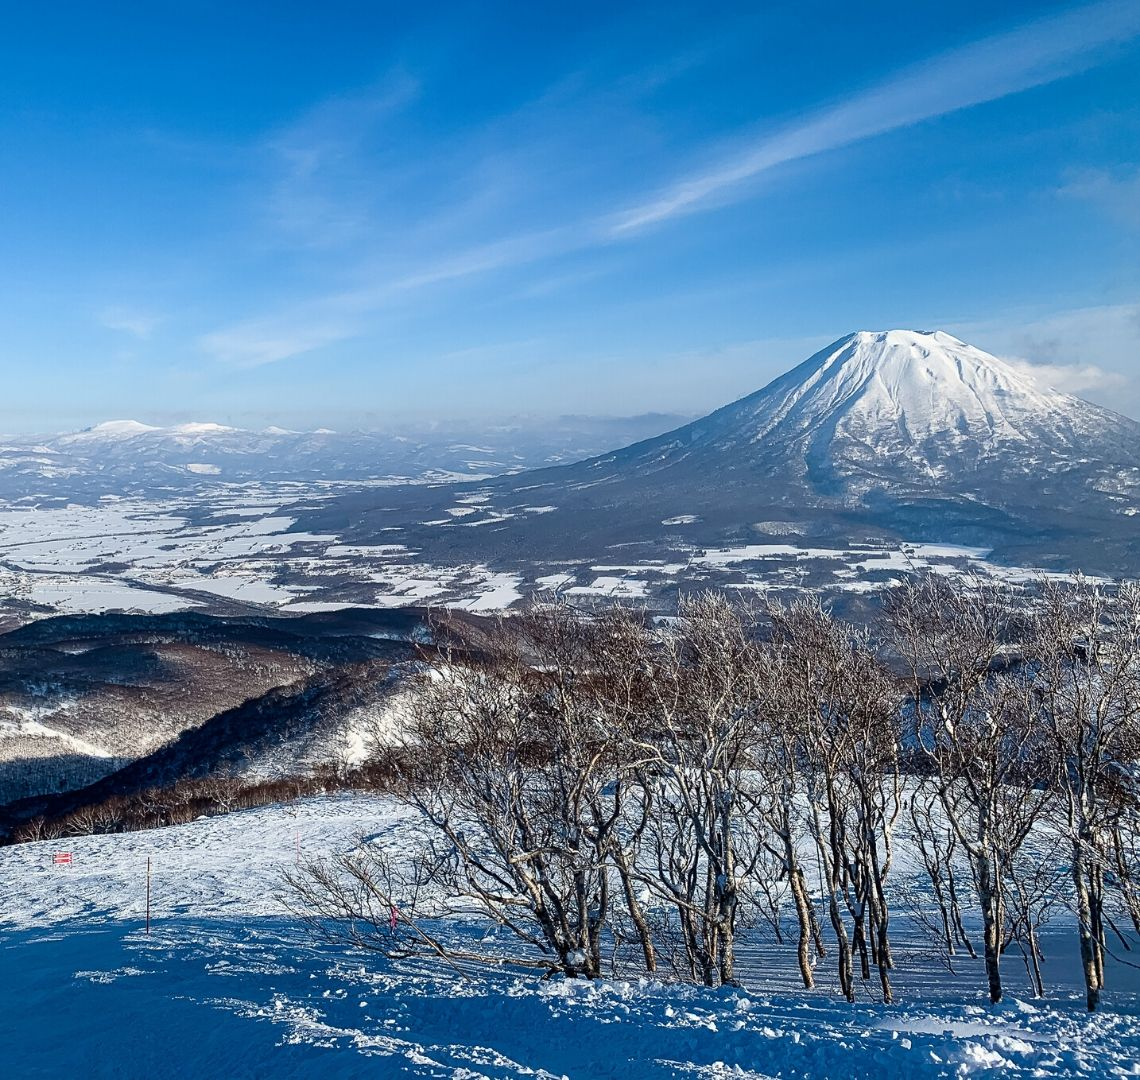 5 reasons to go family skiing in Niseko - Mount Fuji in the mid ground with other smaller mountains in the distance and trees in the foreground